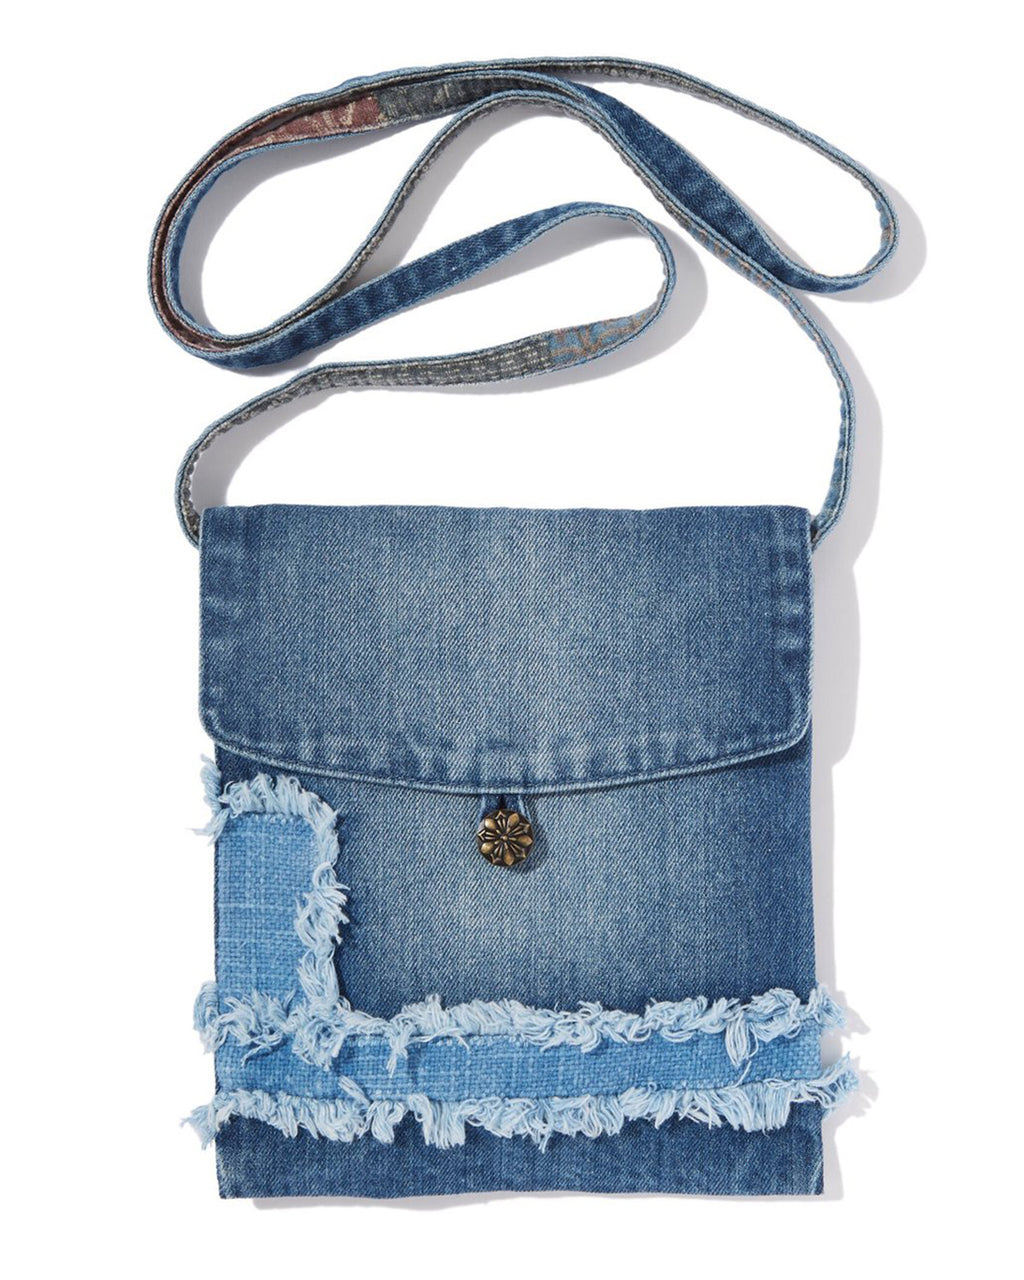 Musette bag - Light Blue